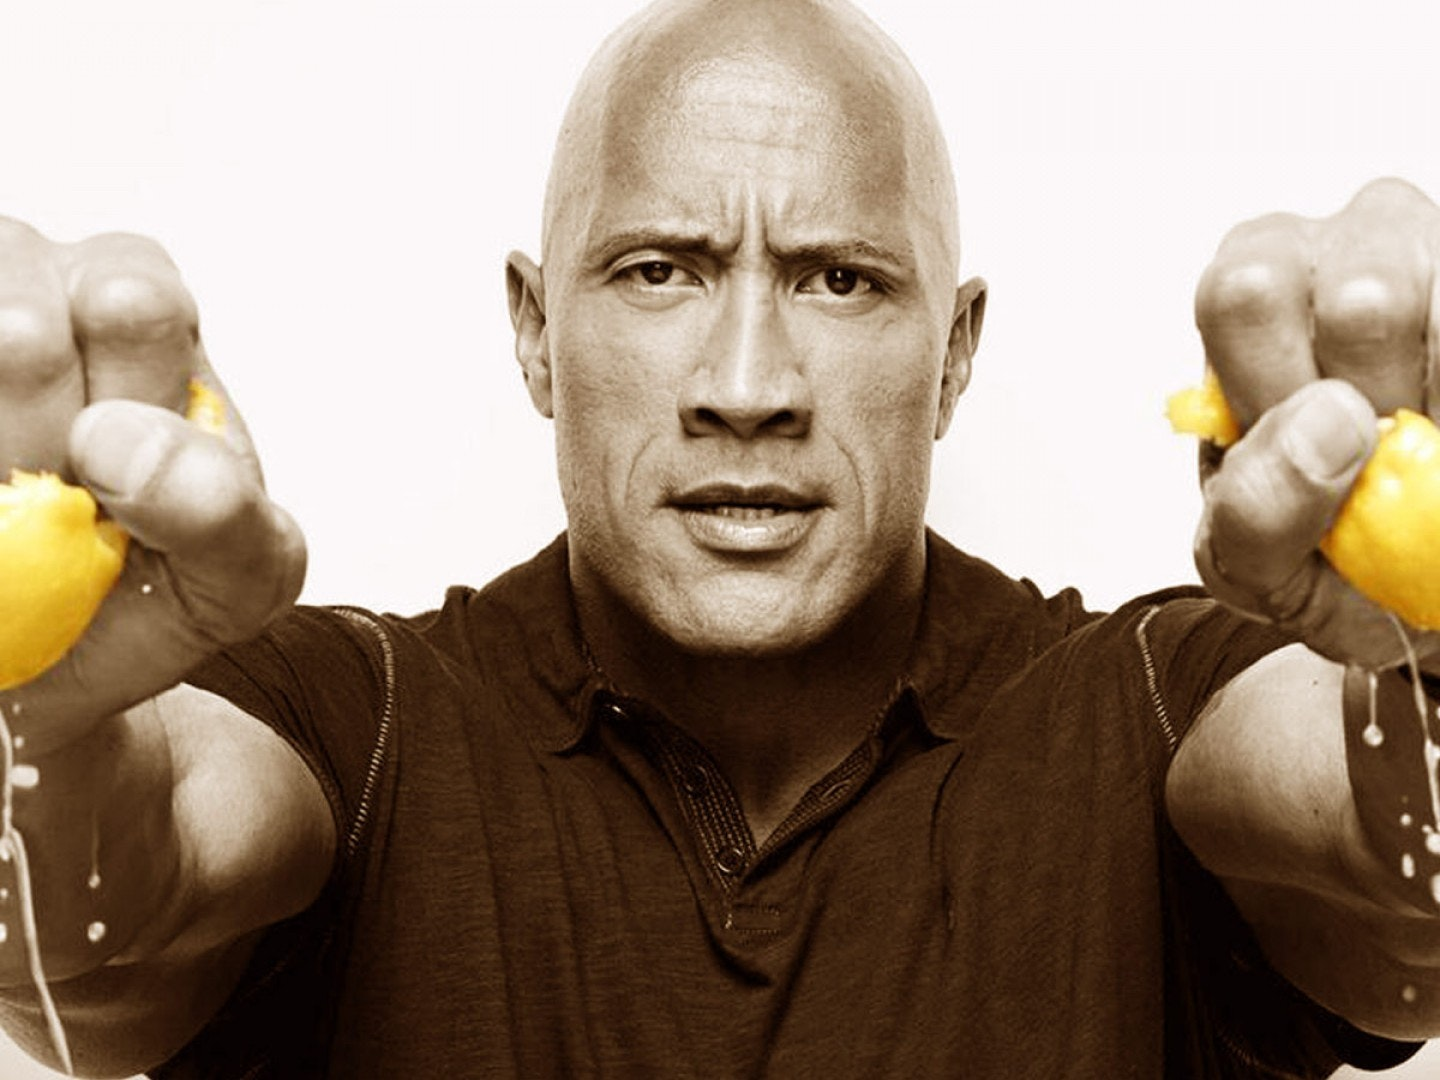 The Rock Has 15 Movies Planned For The Next Few Years. Will Any Of Them Be Good?